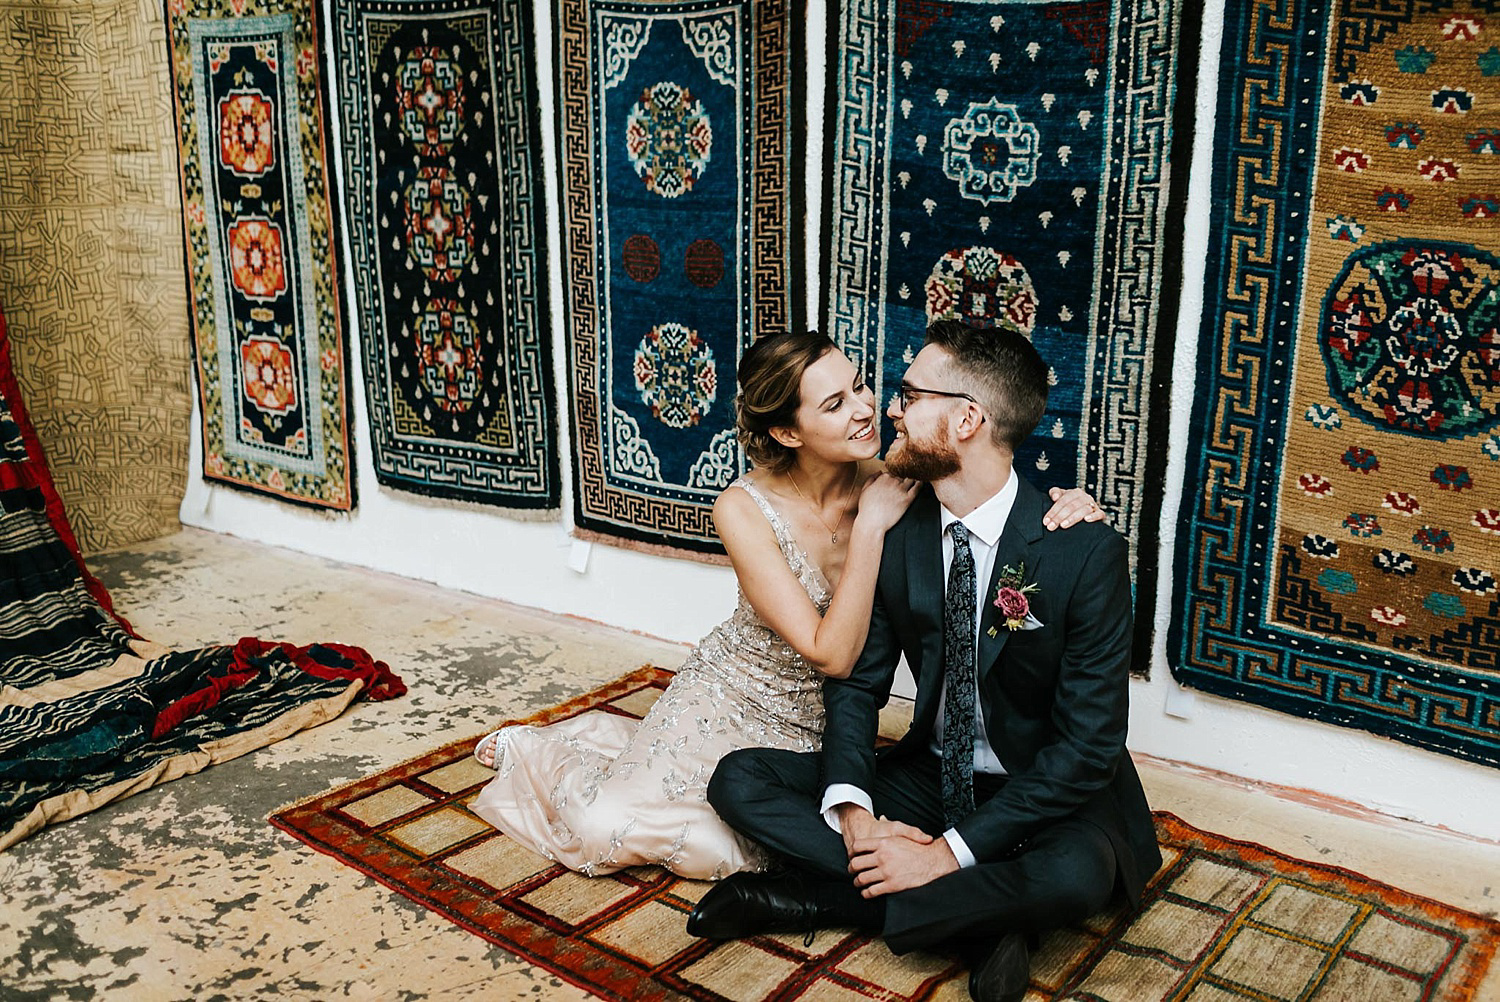 Bride and groom sitting on a vintage rug and surrounded by other rugs.